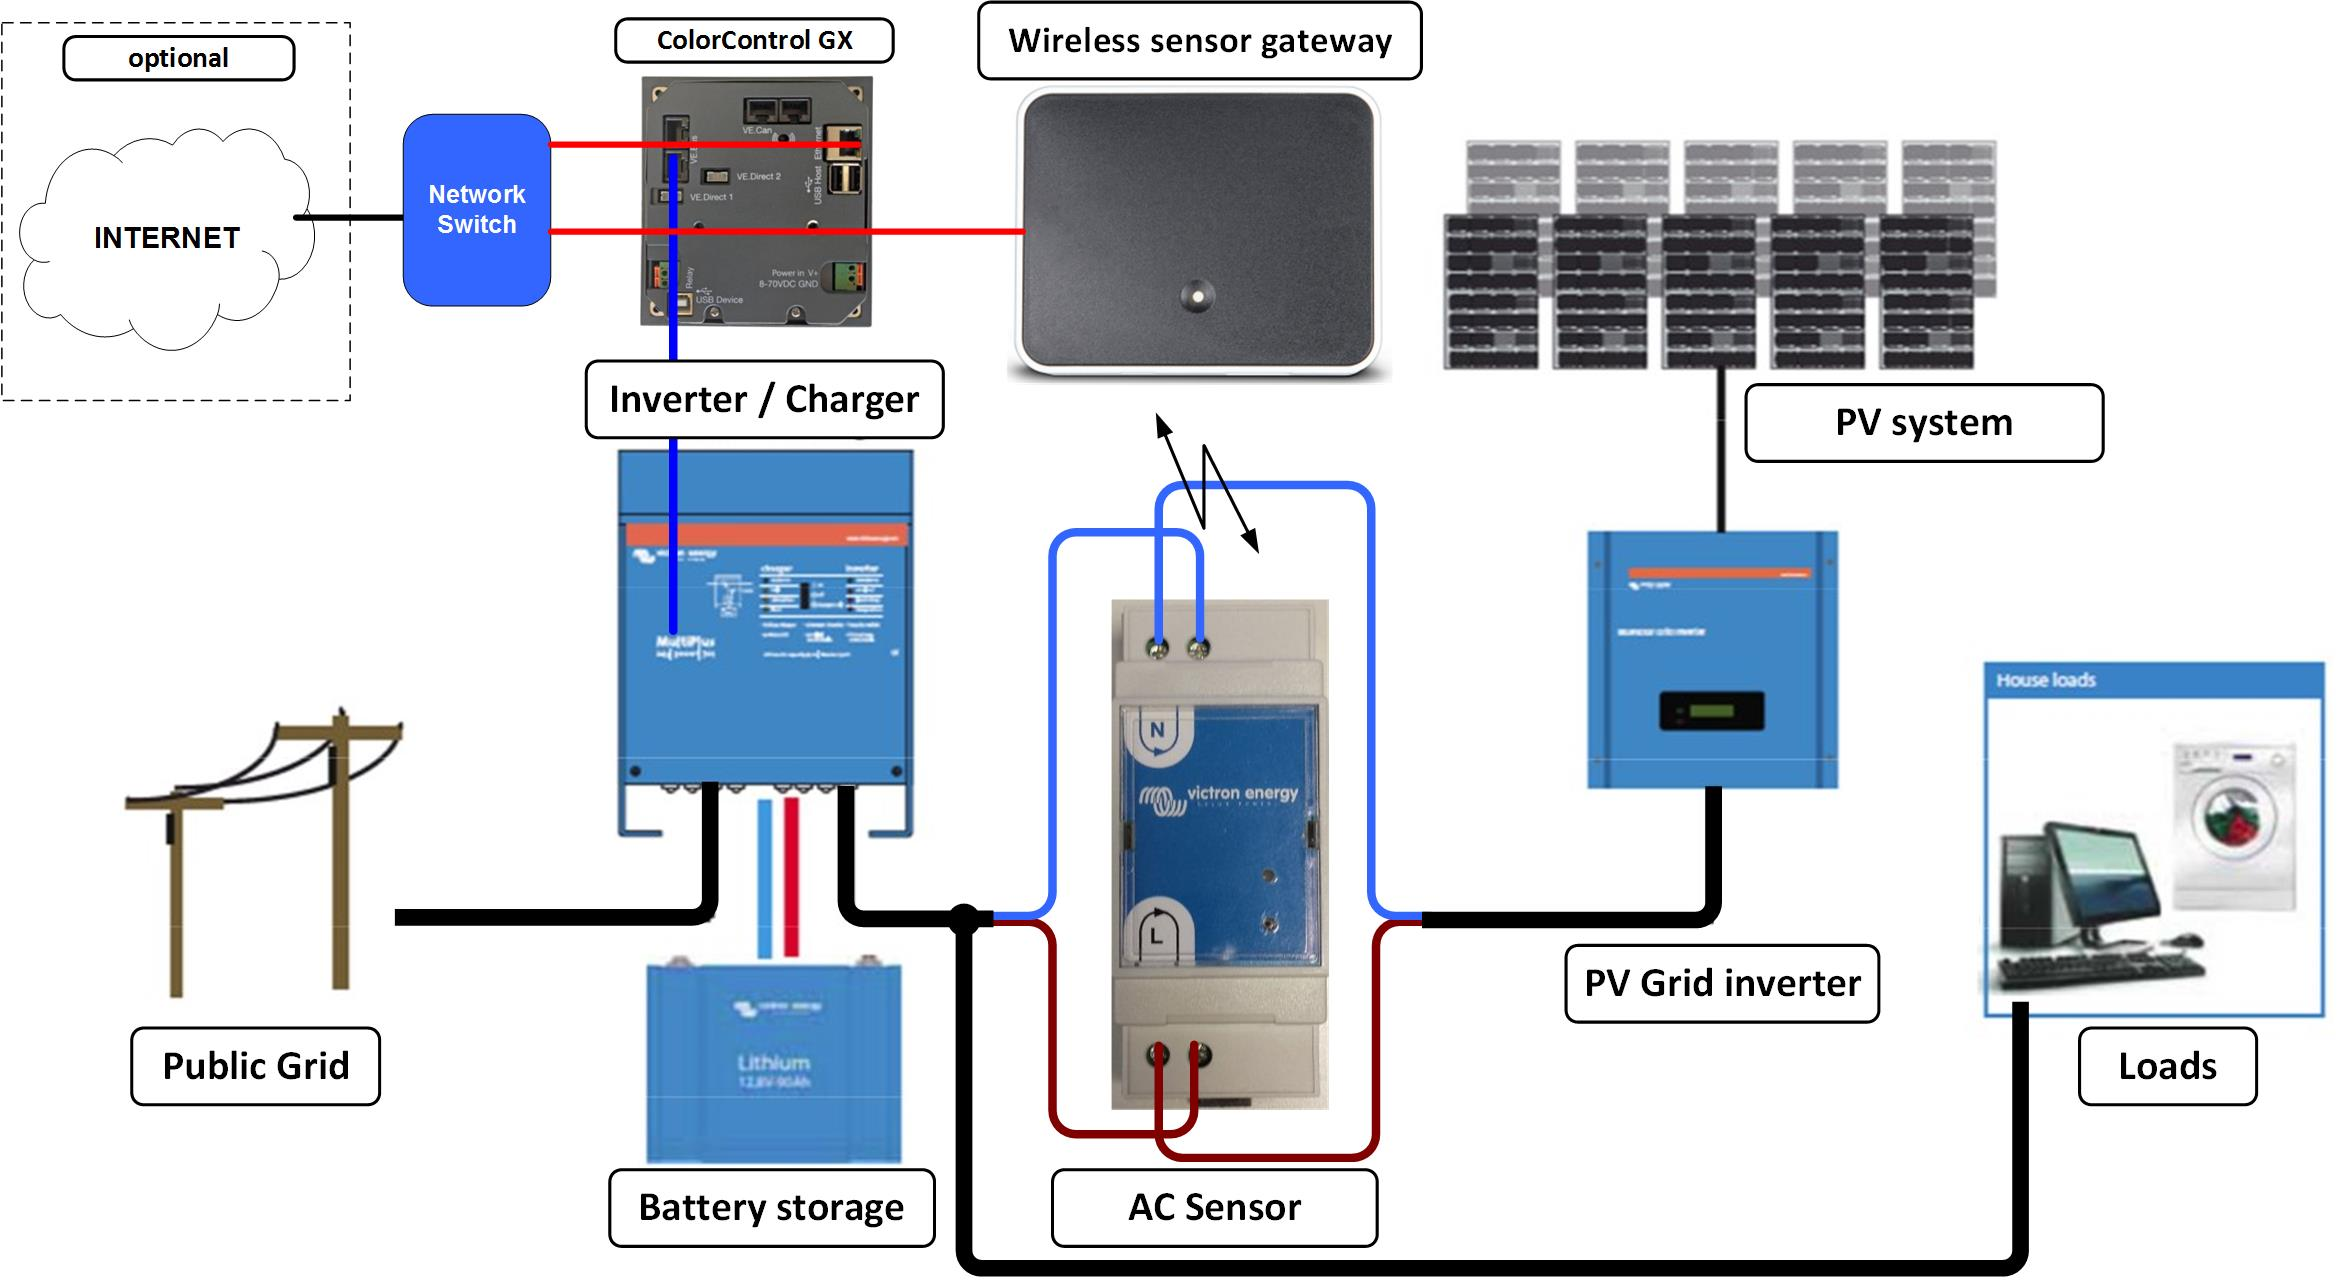 ccgx quby_gateway_schema?w=850&tok=8bbaf9 wireless ac sensor manual [victron energy] victron quattro wiring diagram at crackthecode.co